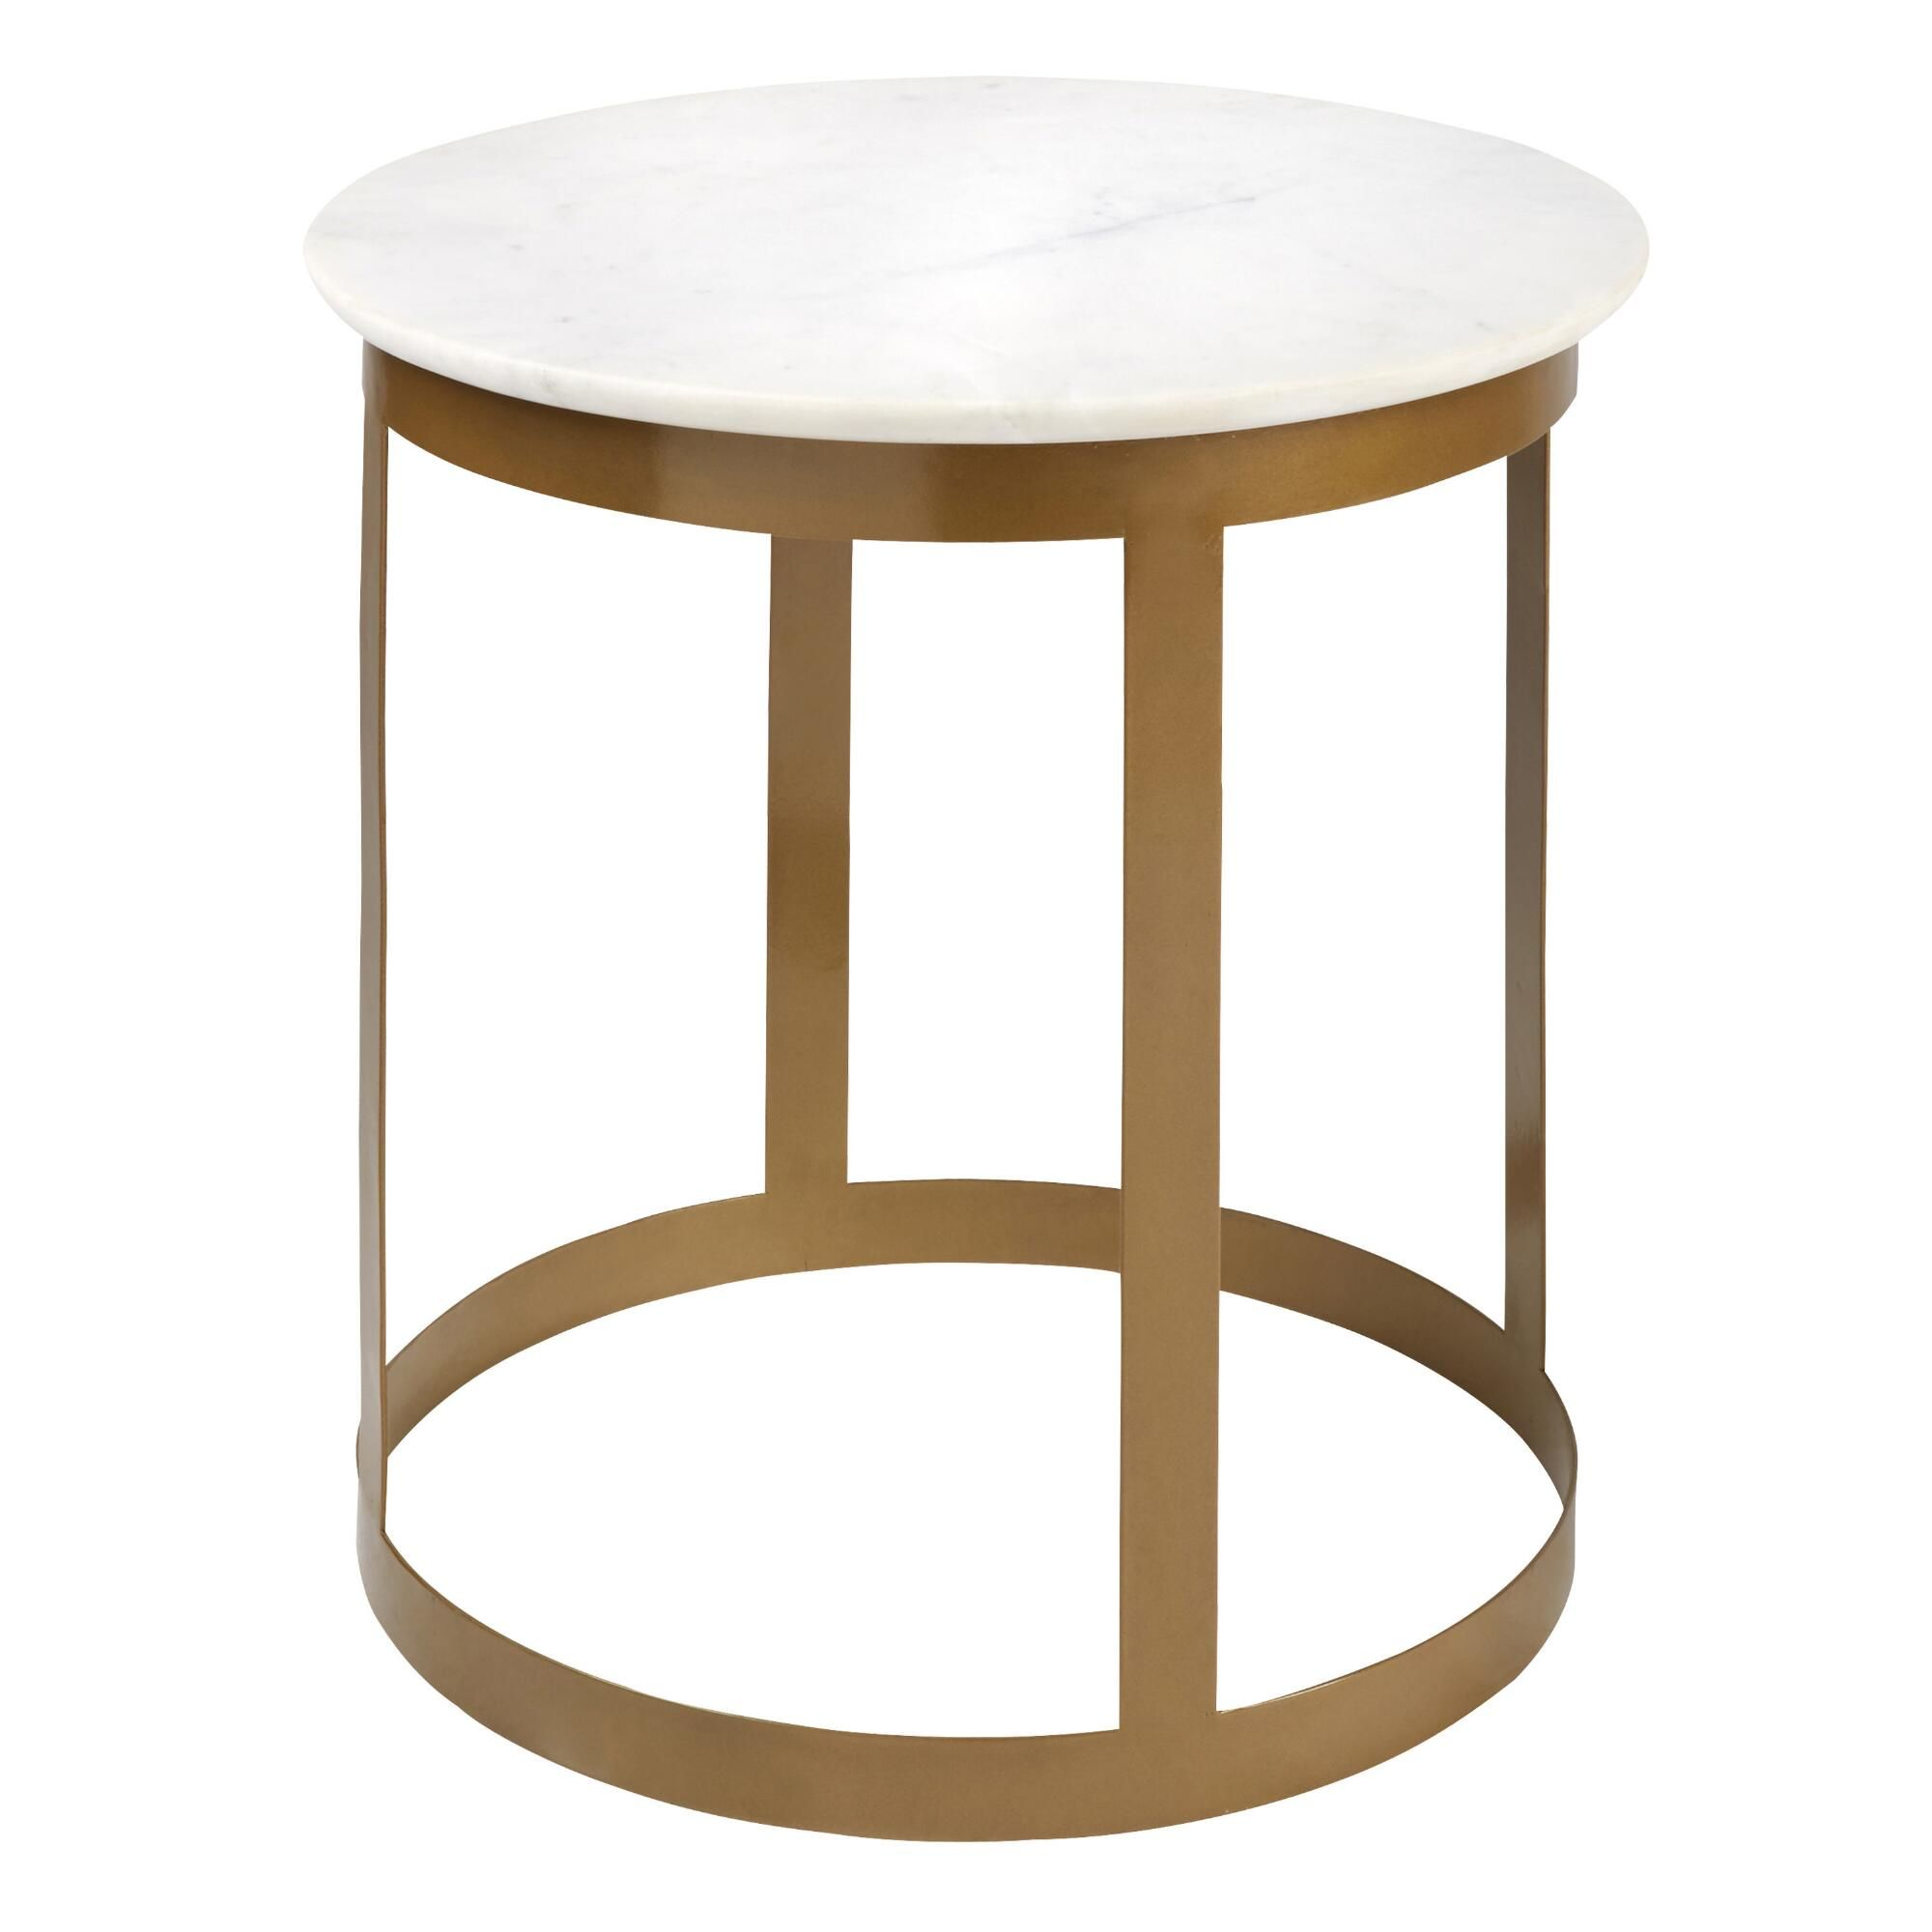 gold frame round accent table with marble top tree marbles base target give your decor the golden touch our adds lux simple sofa west elm ott drop down leaf tile patio furniture